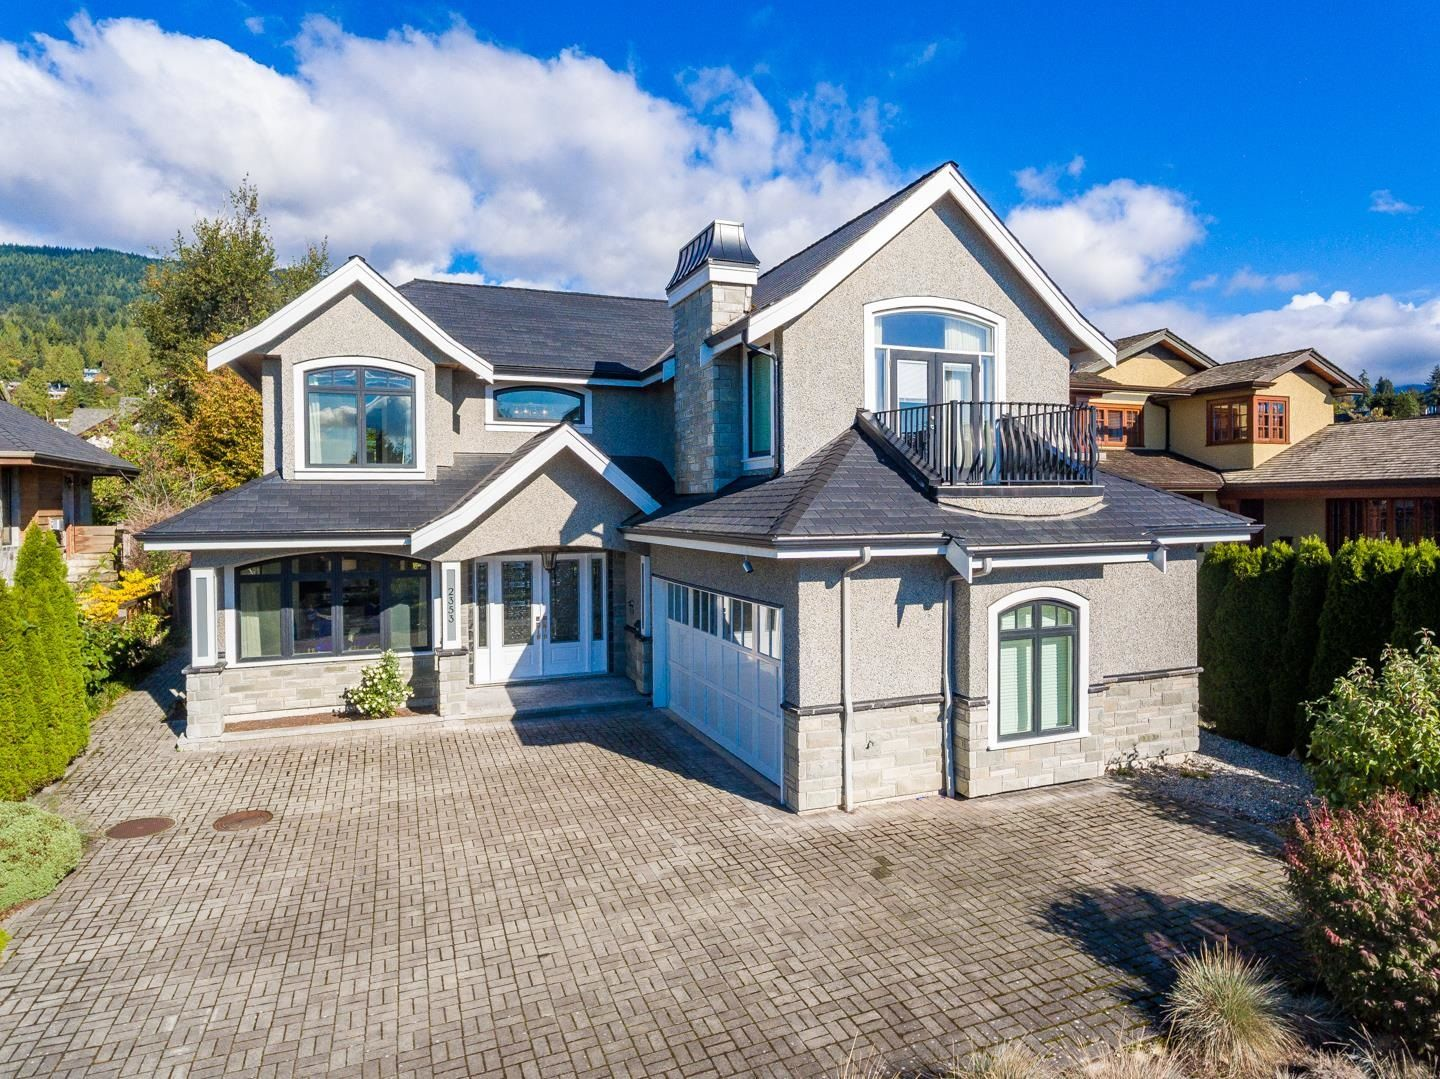 Main Photo: 2353 JEFFERSON Avenue in West Vancouver: Dundarave House for sale : MLS®# R2625044